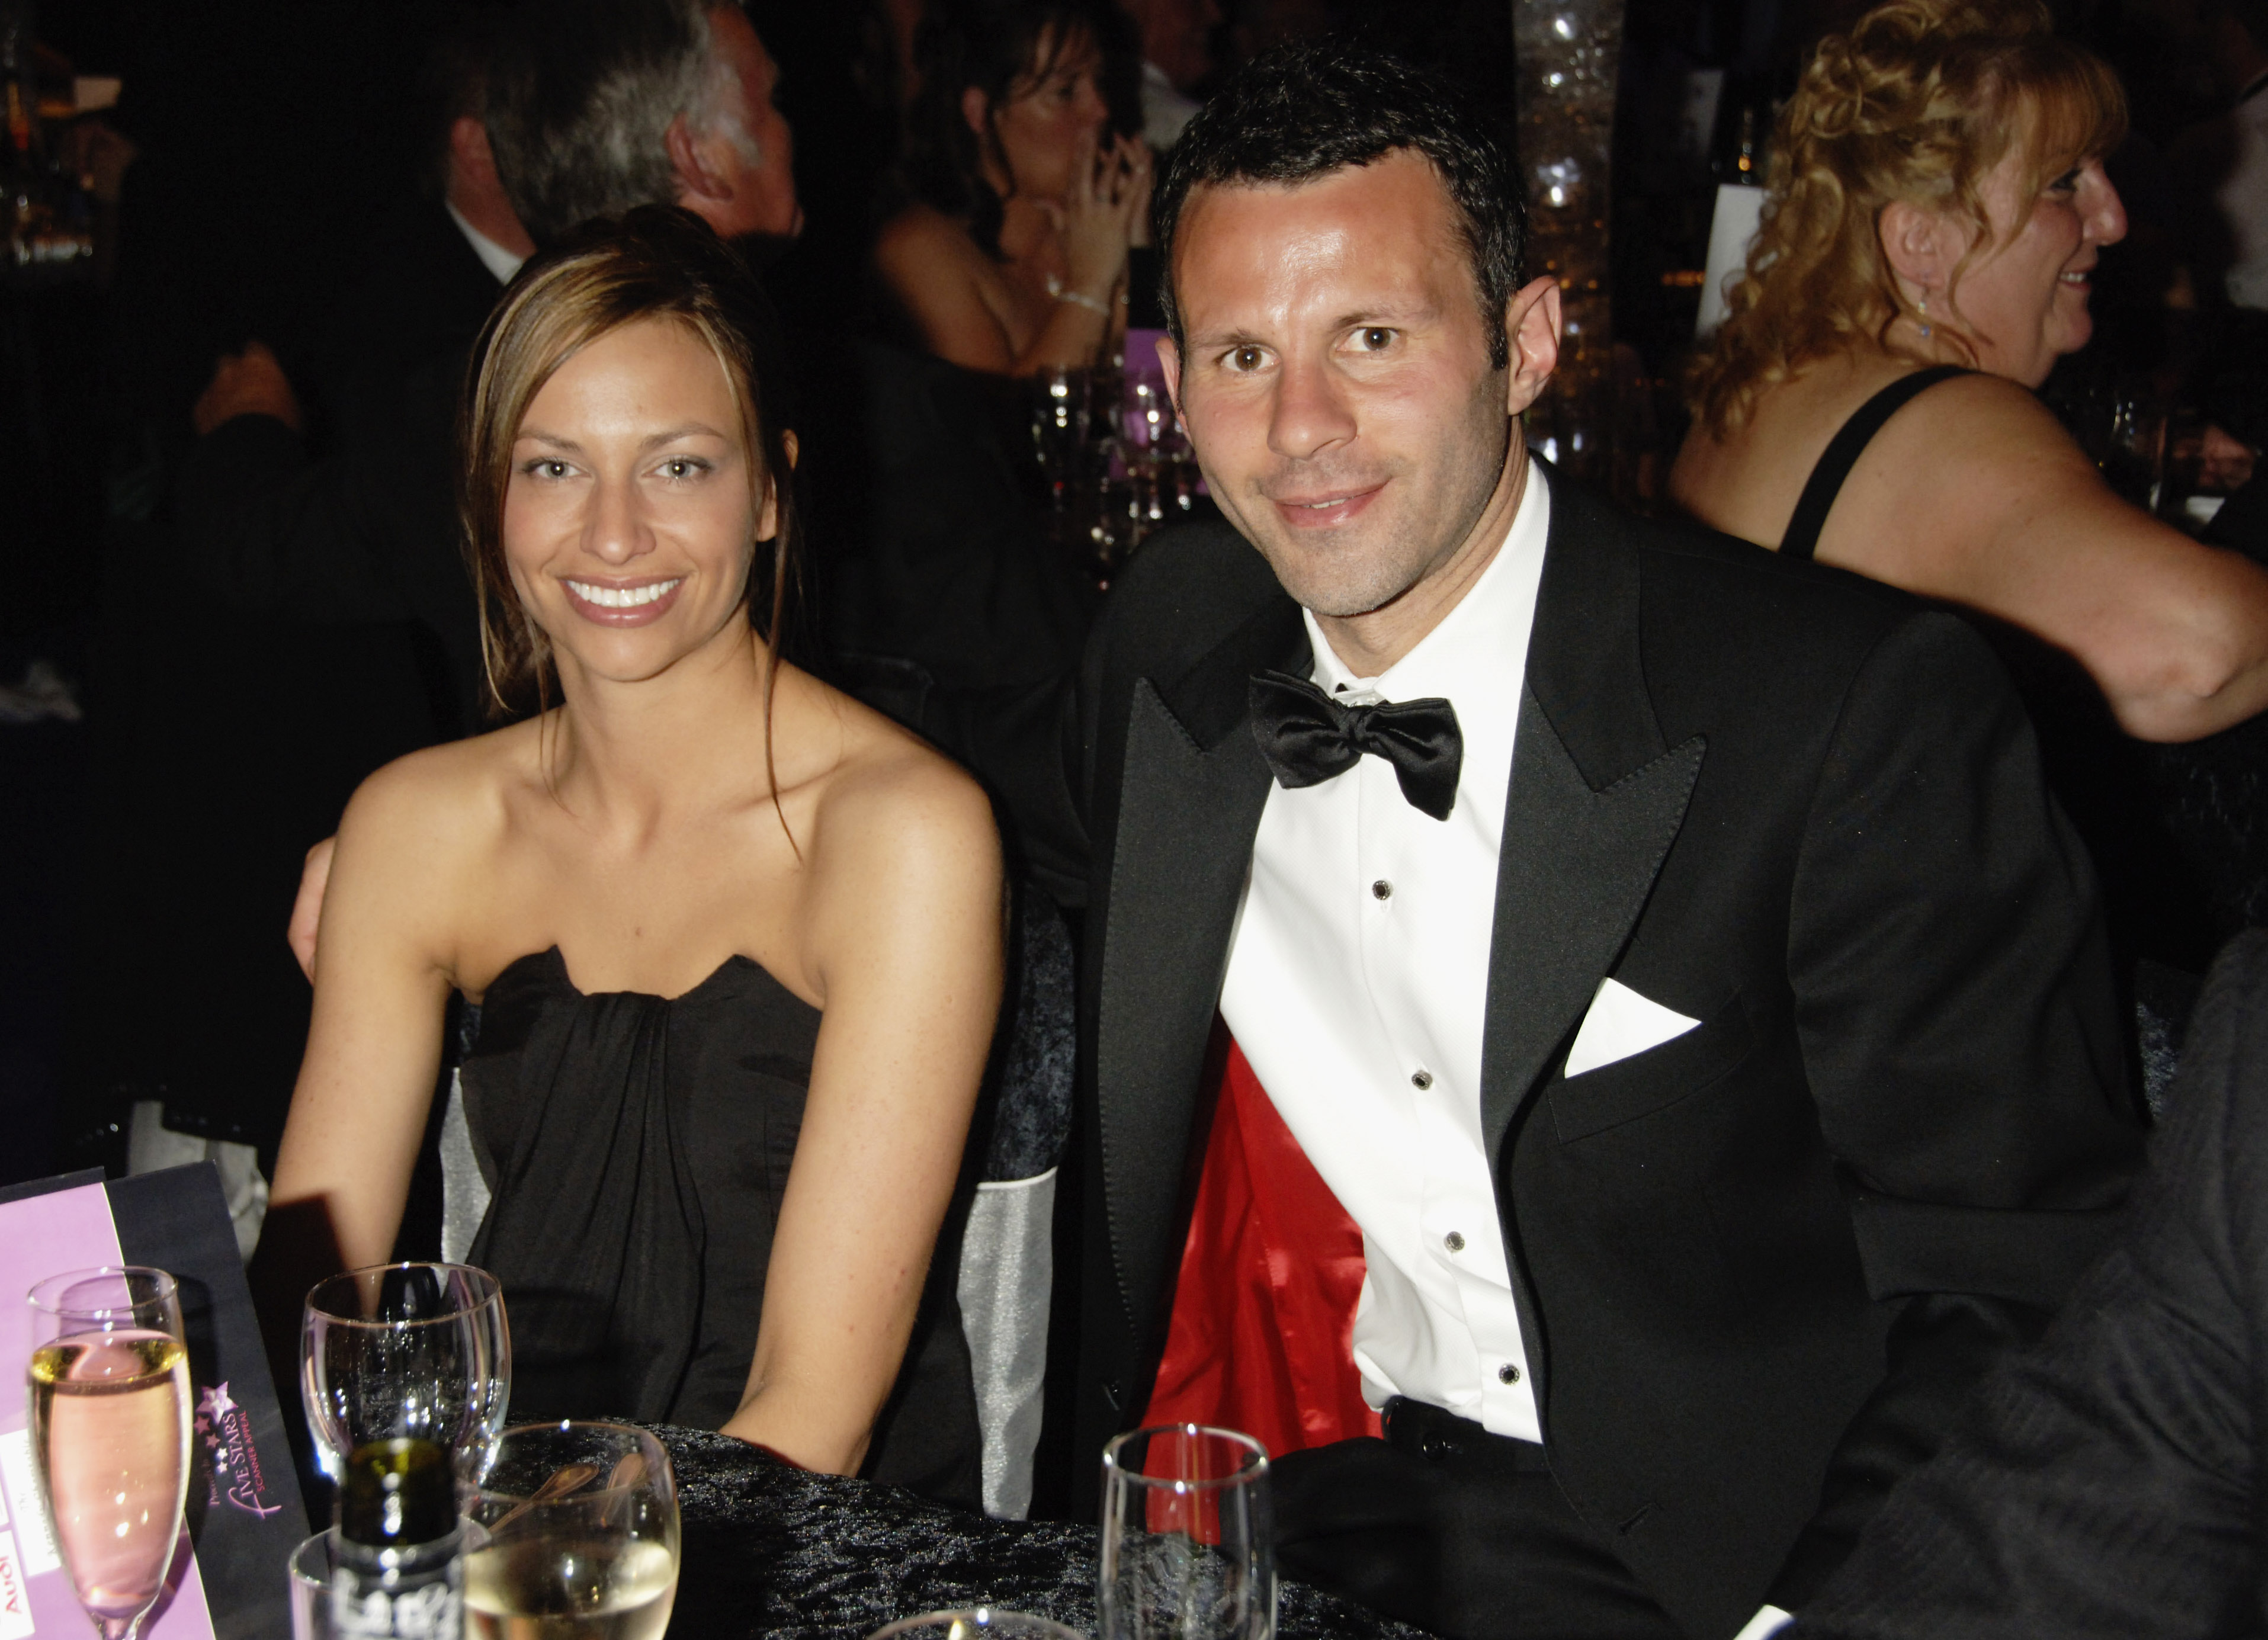 Happier times? Ryan and Stacey Giggs pictured in 2007 (Picture: Dave M. Benett/Getty Images)